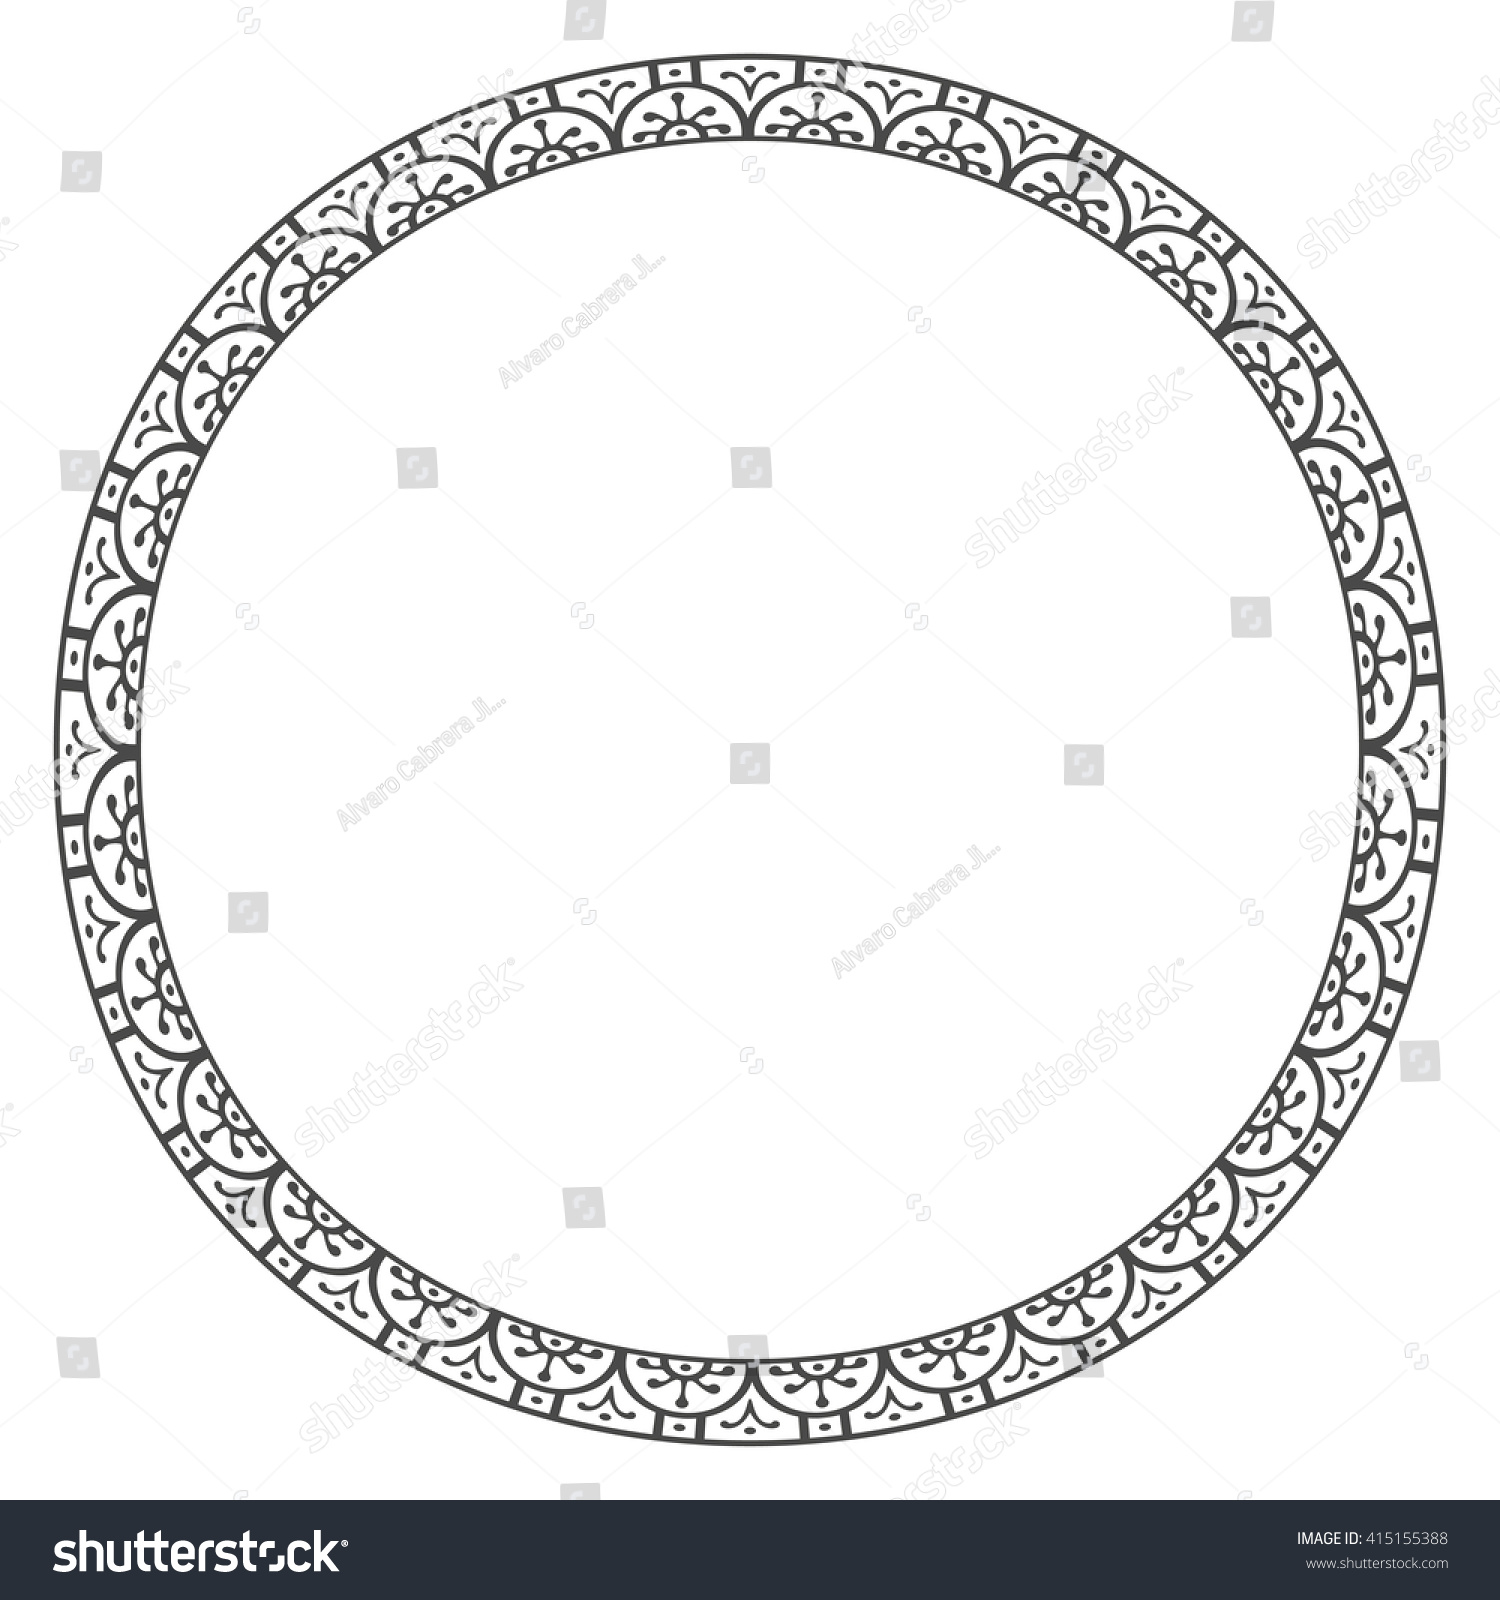 Old classic border rounder designs stock vector for Classic border design